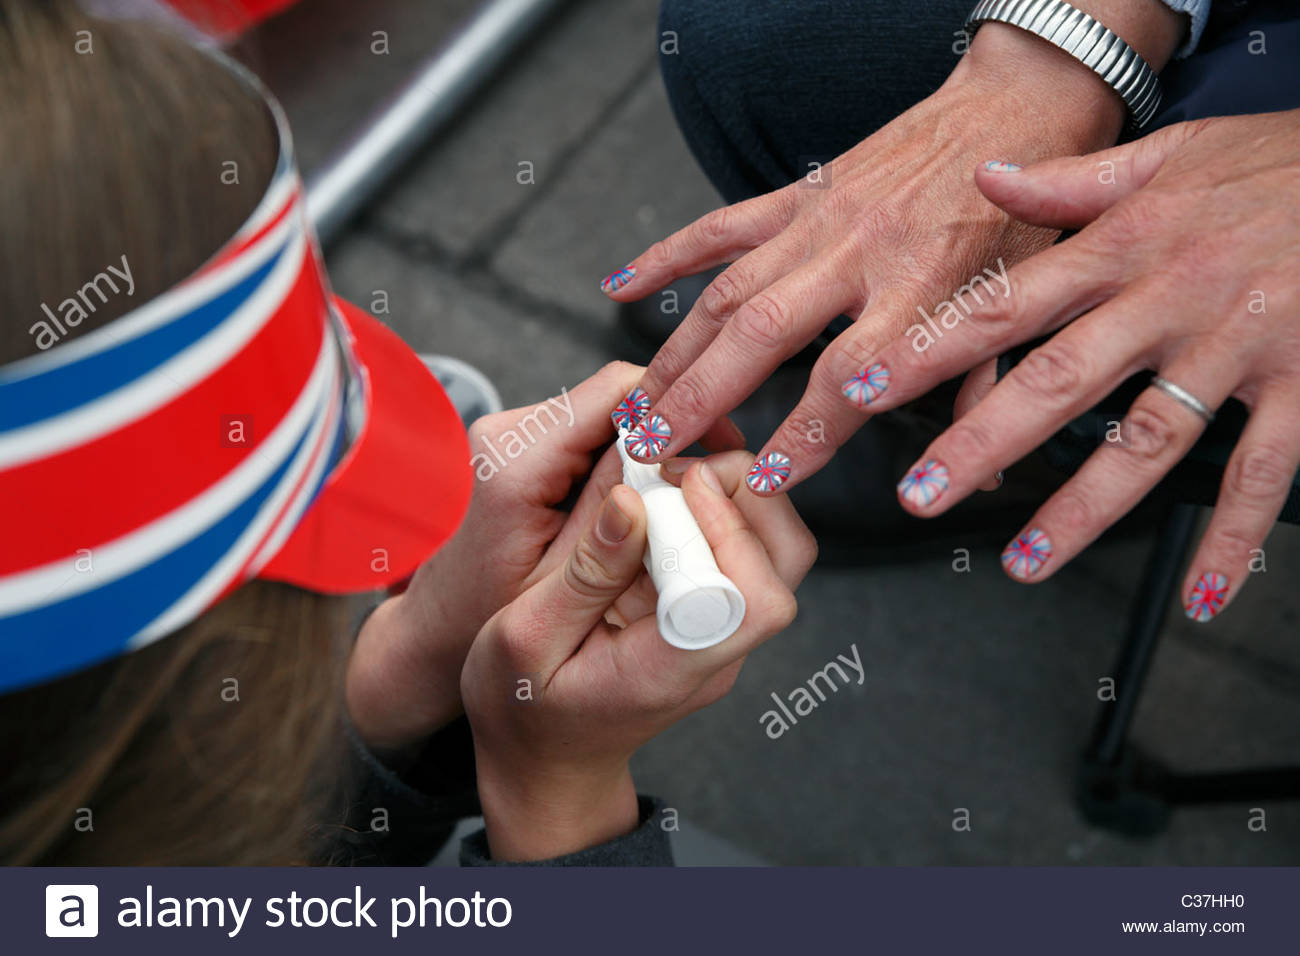 Una donna dipinge il suo amico le unghie con Union Jack Flag per il Royal Wedding del principe William e Kate Middleton Immagini Stock